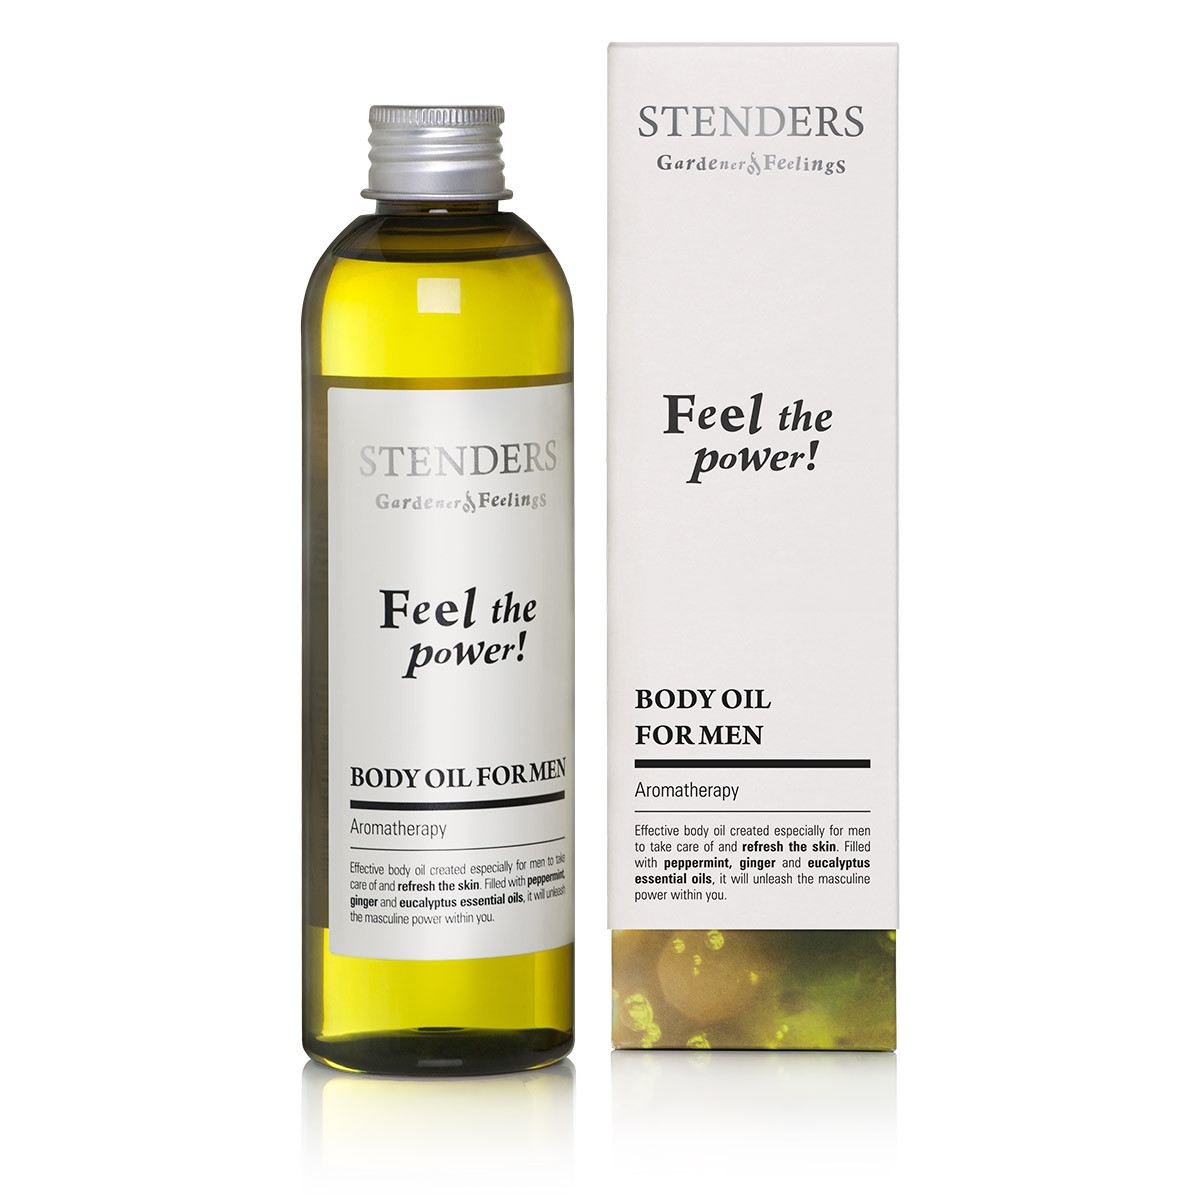 Stenders Cosmetics Body Oil For Men